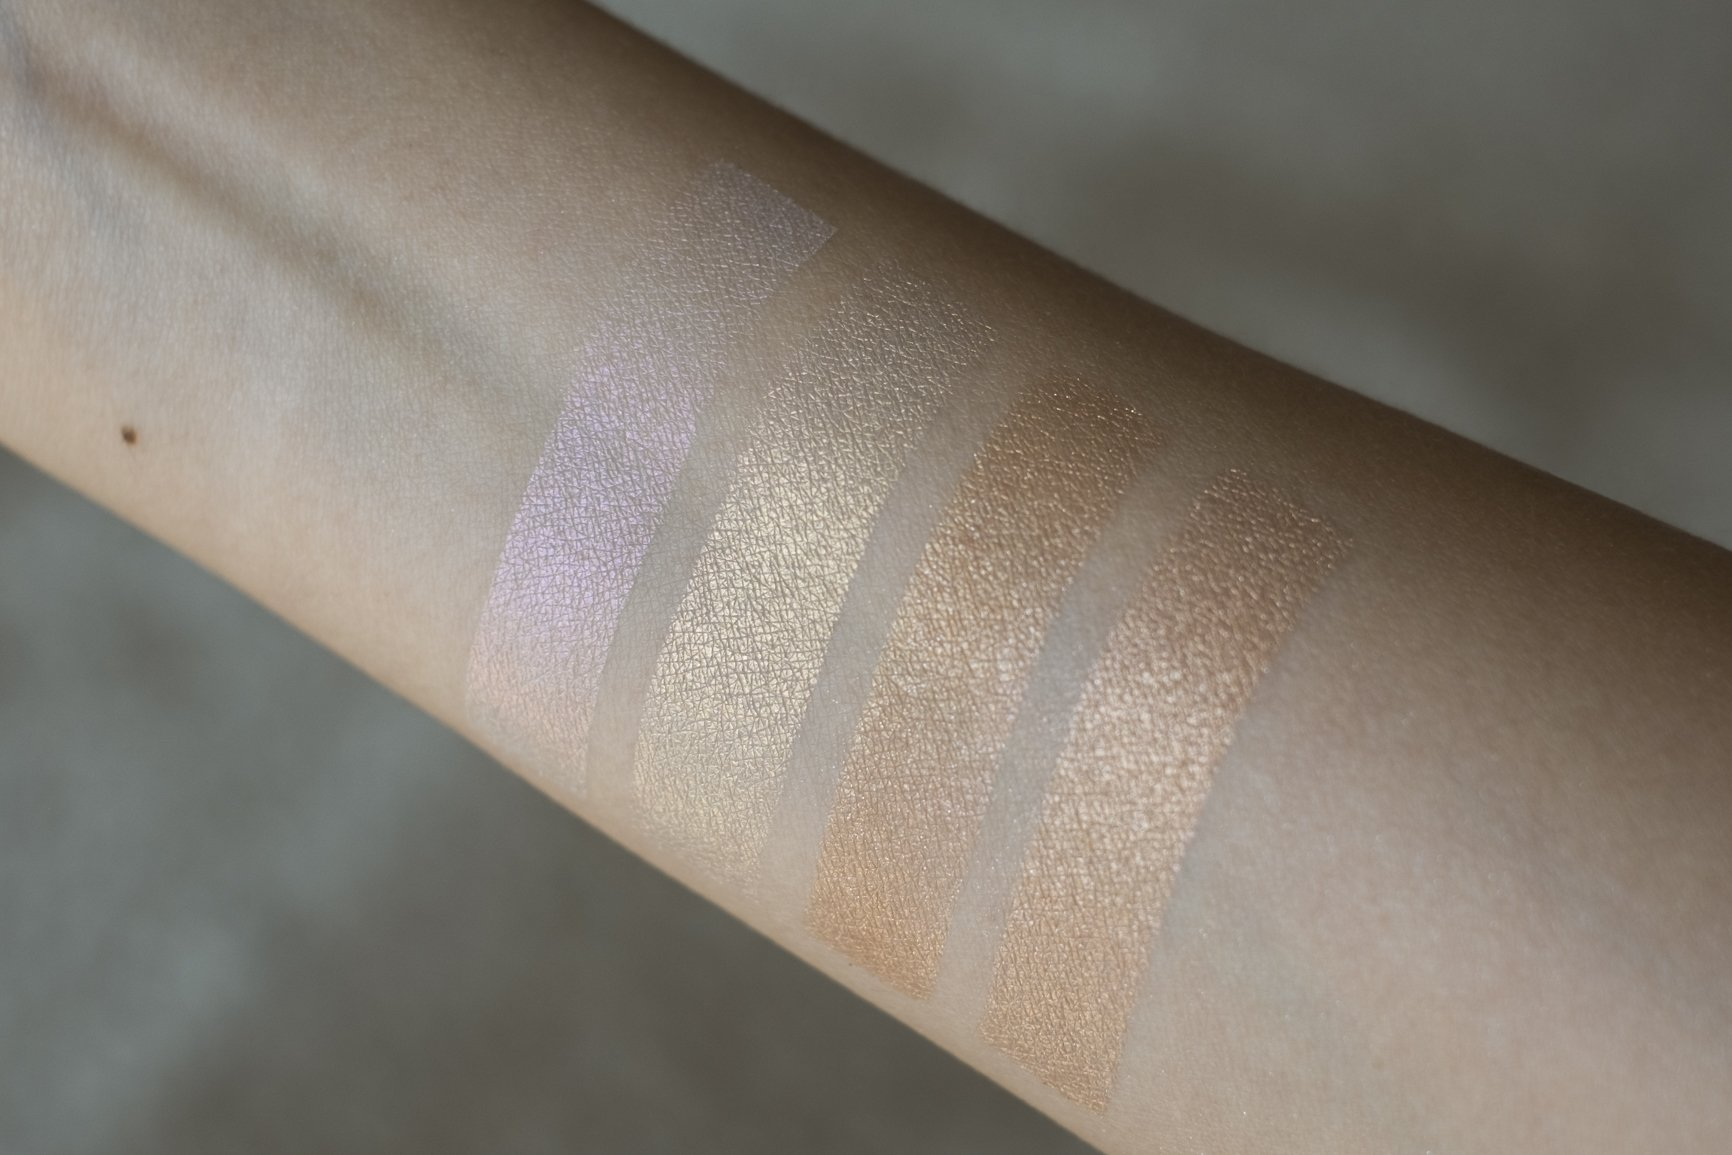 sunkissedblush-pat-mcgrath-Skin-Fetish-Sublime-Skin-Highlighting-Trio-swatches (30 of 30)